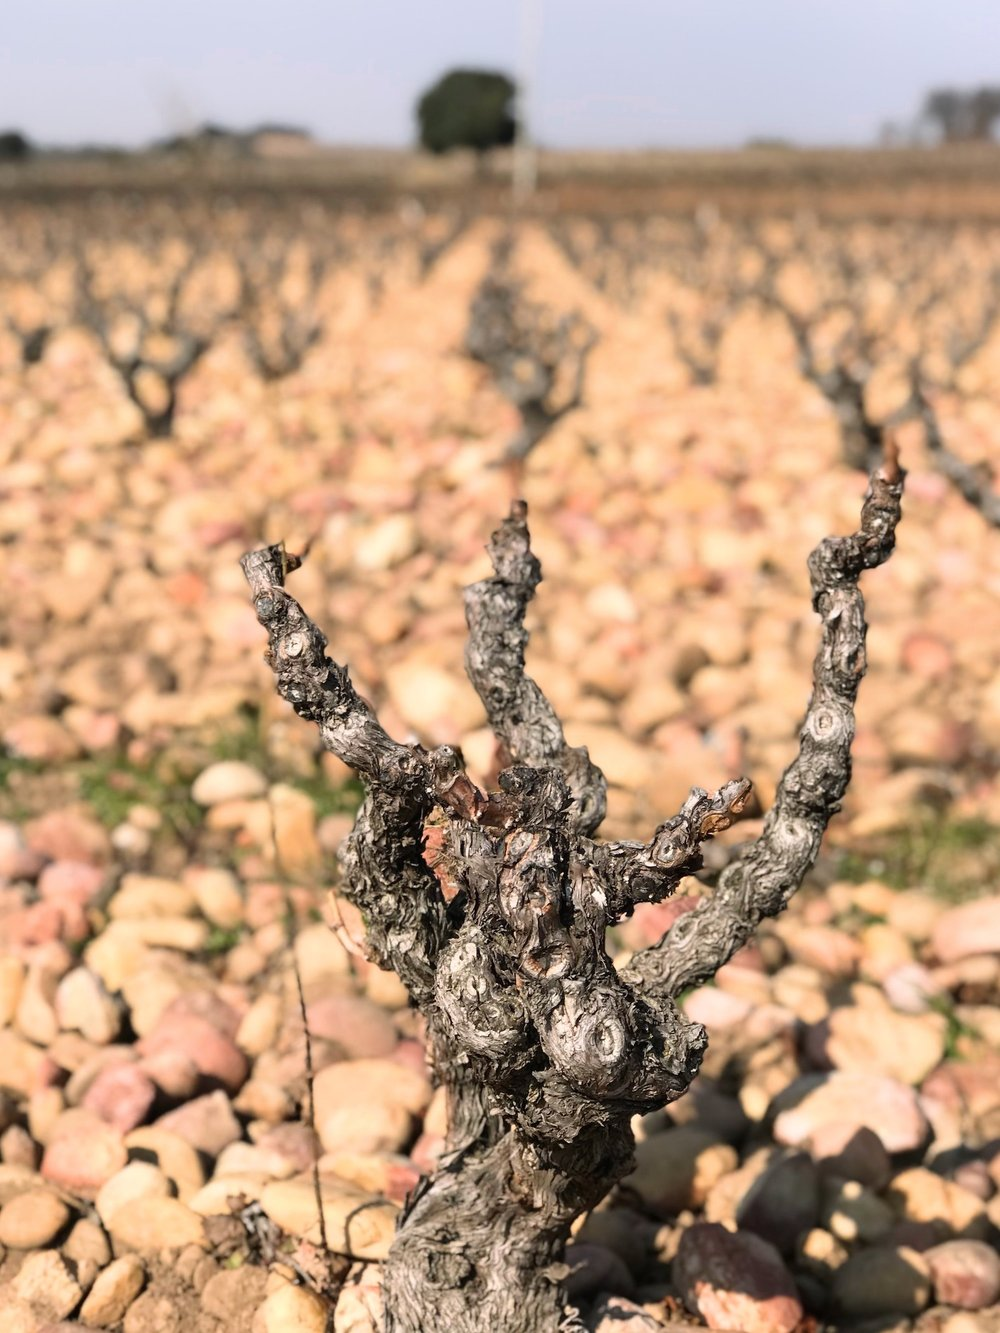 This old Grenache vine surrounded by tan colored rocks means this must be Châteauneuf-du-Pape.